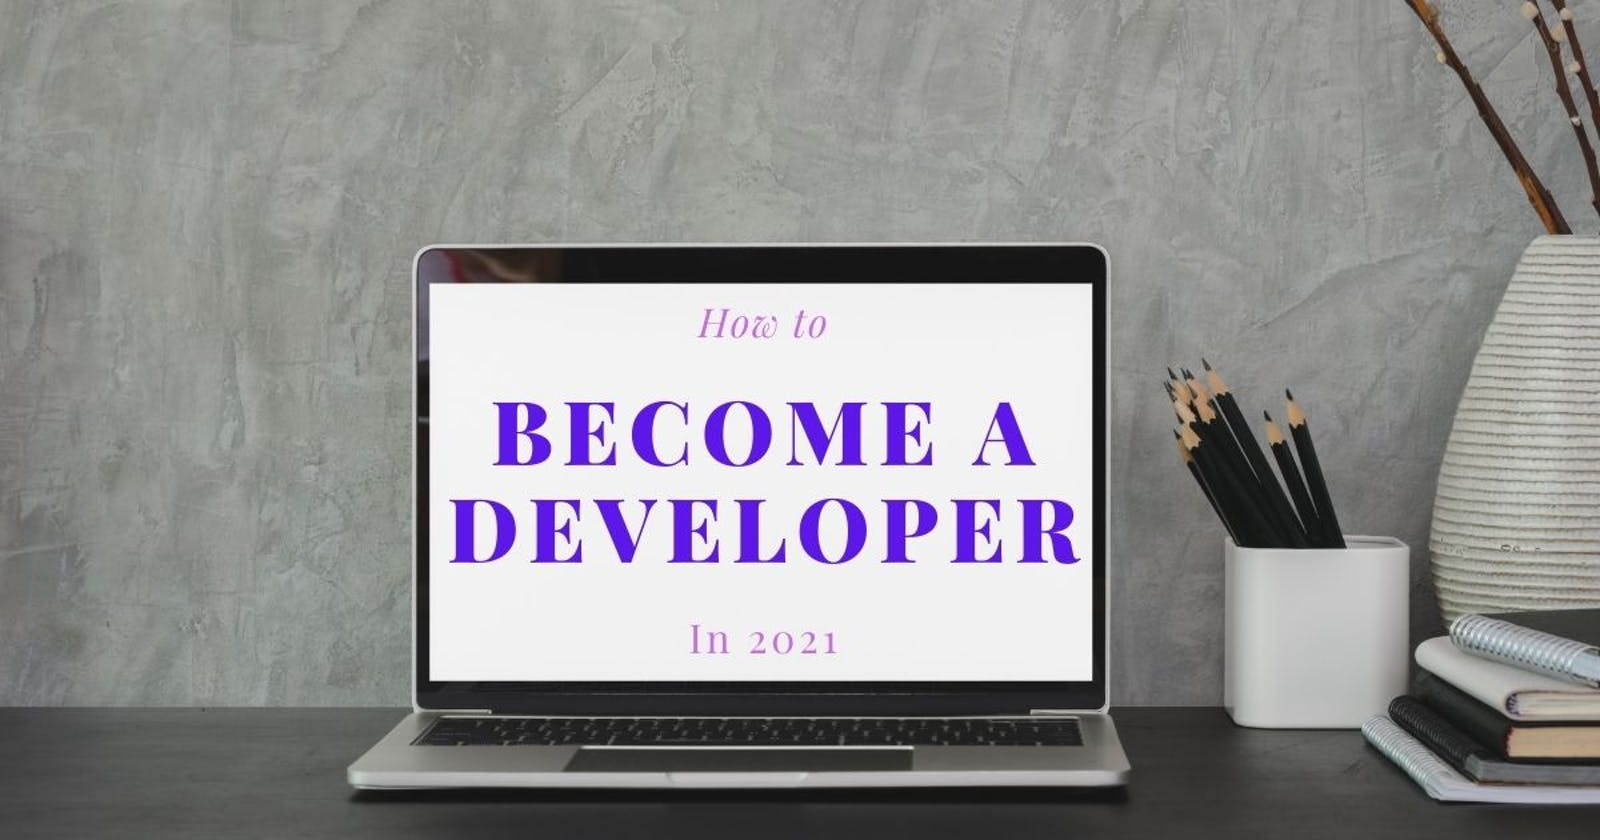 How to become a developer in 2021